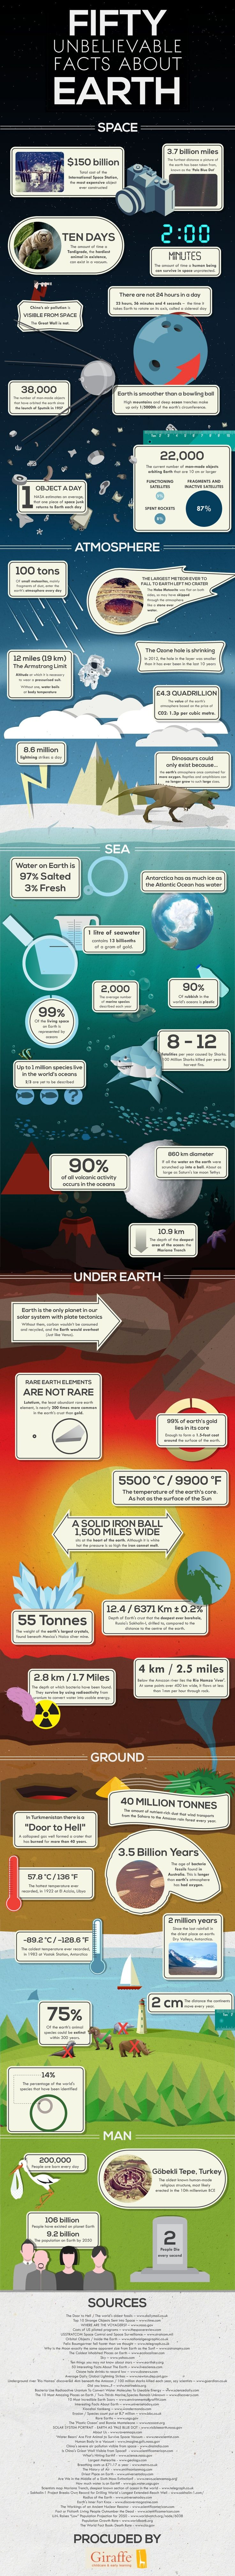 50 Amazing Facts About Earth.